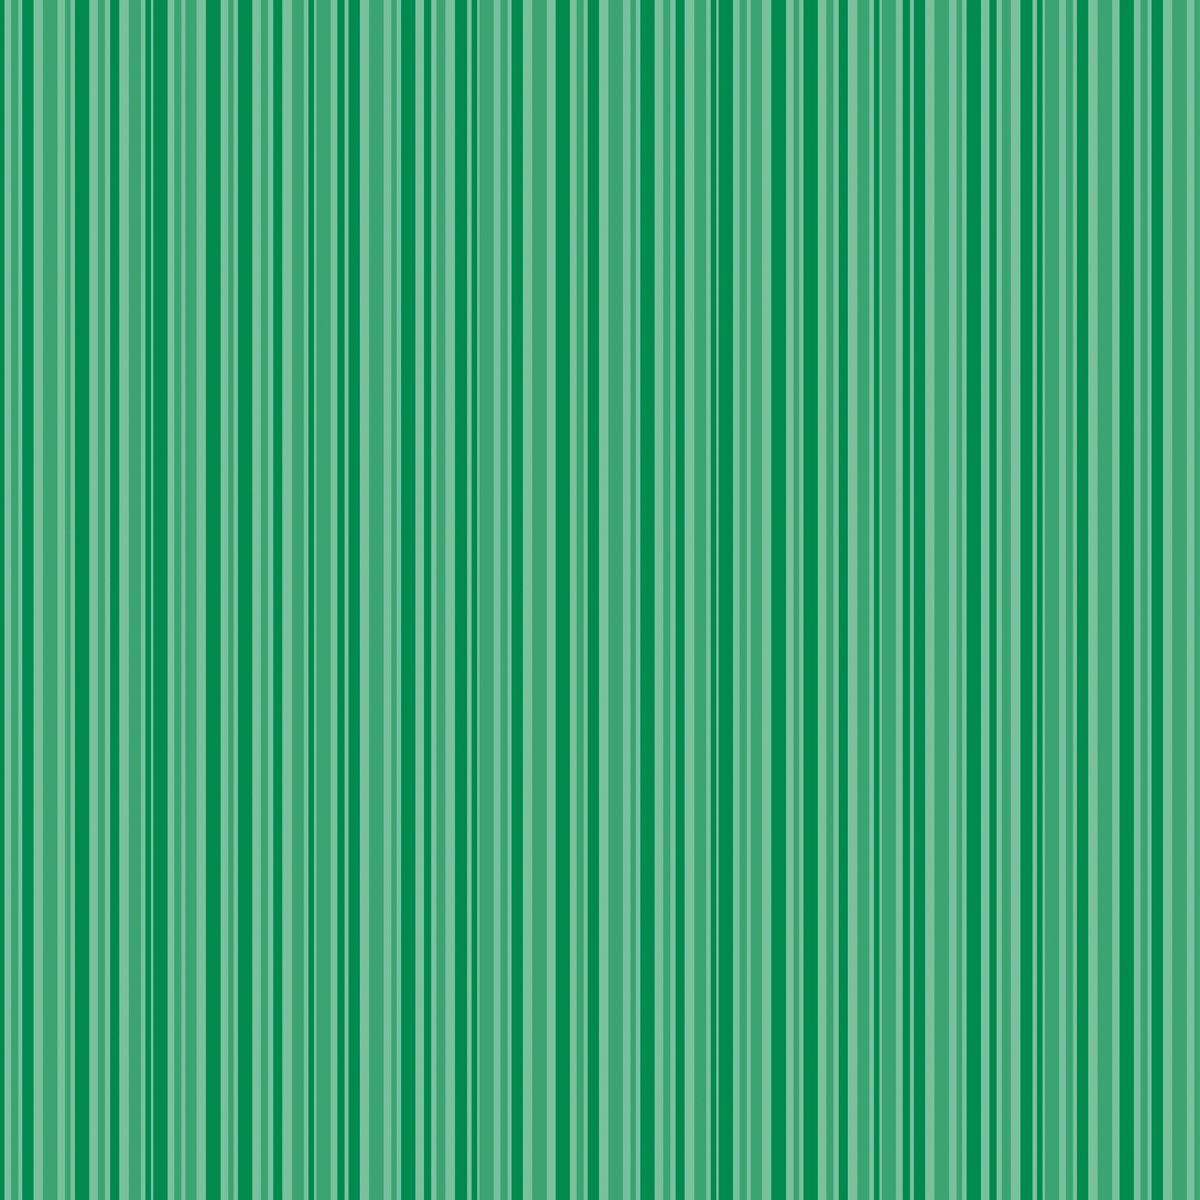 Core'dinations Core Basics Patterned Cardstock 12 X12 Inches Dark Green Stripe (12 Pack)